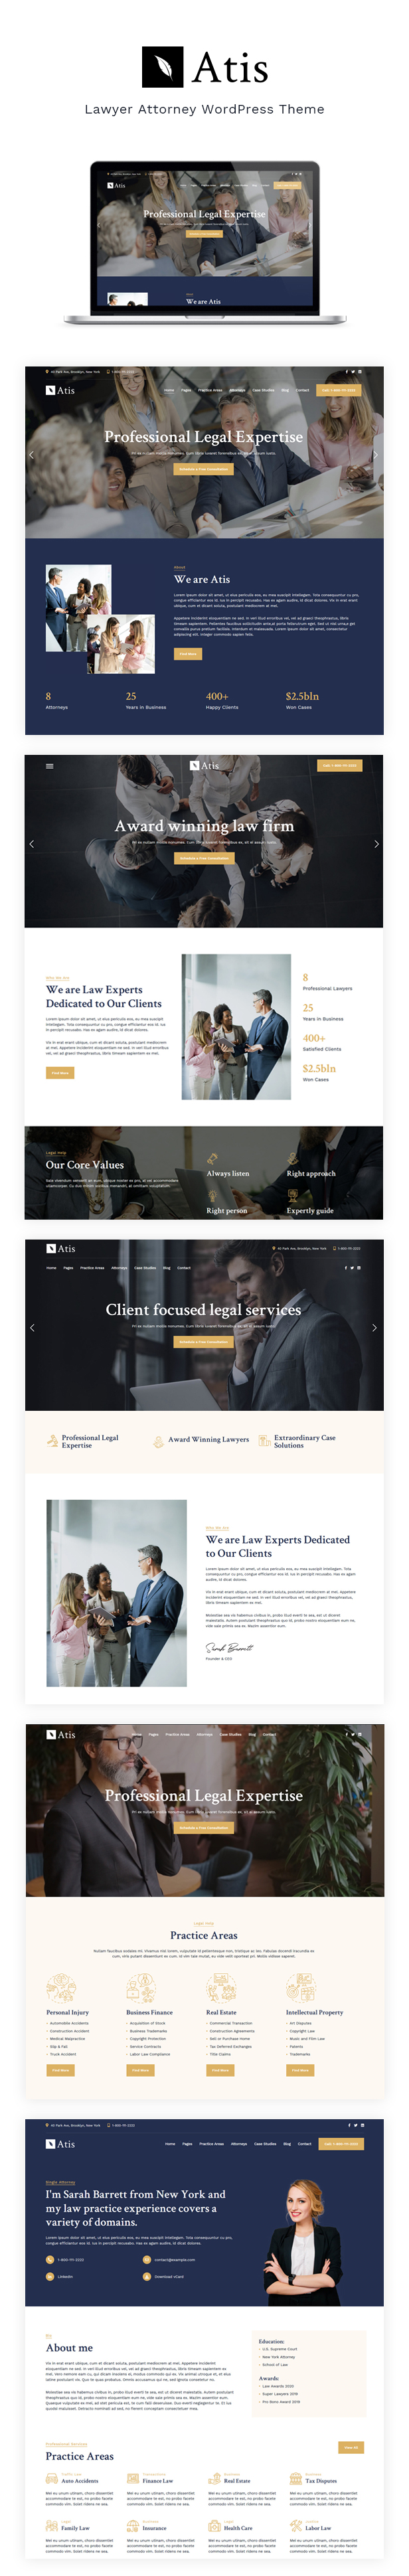 Atis - Lawyers Advisors Business Theme - 1